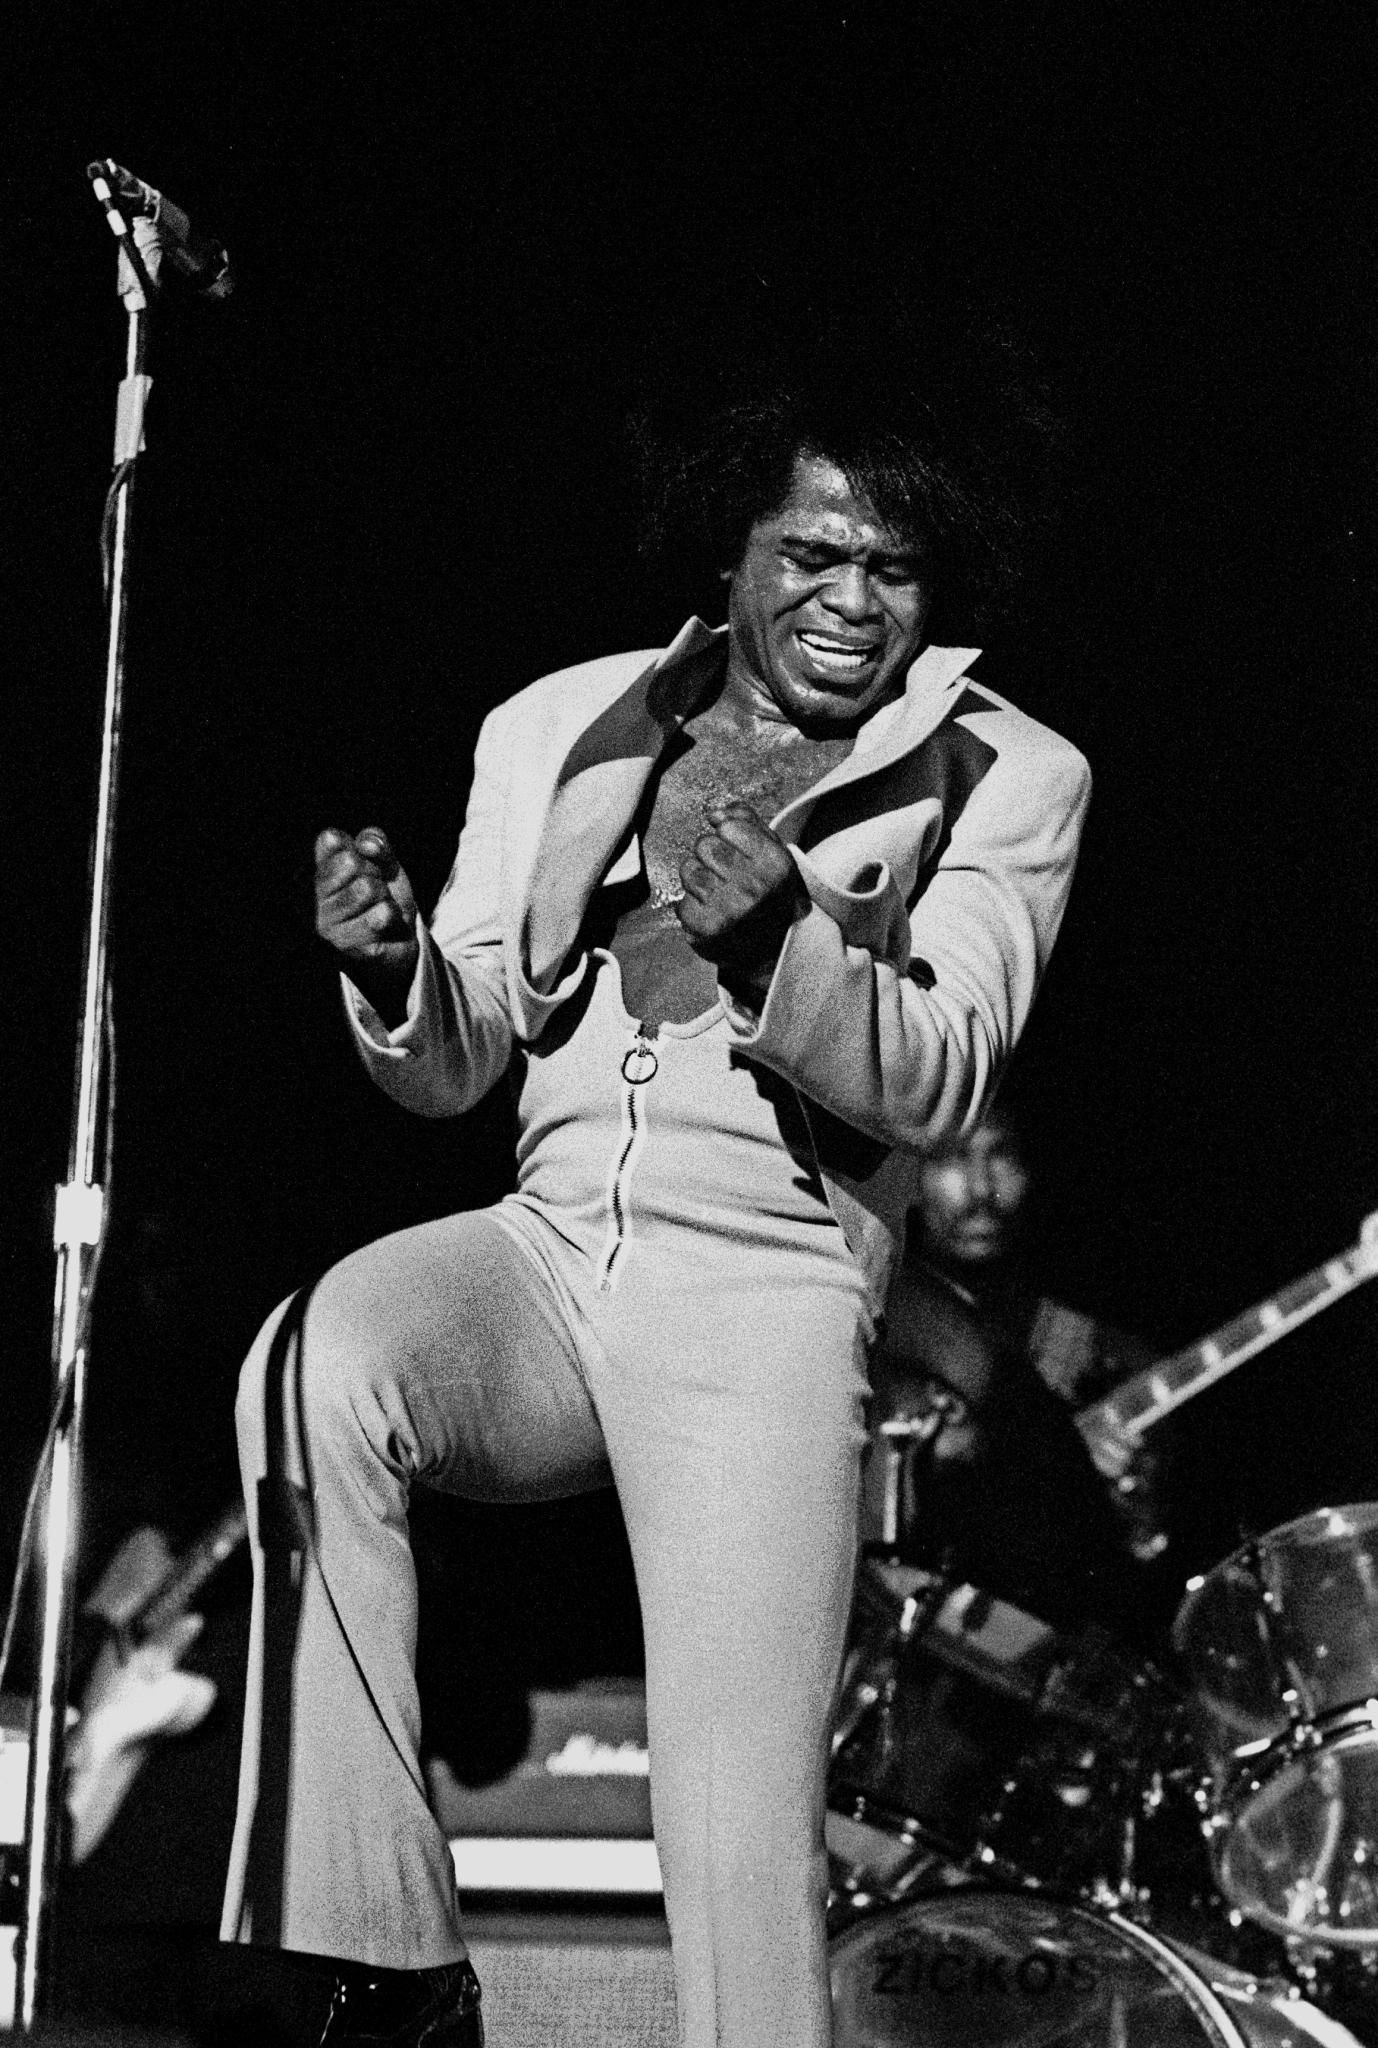 Photo of James Brown: American singer, songwriter, musician, and recording artist